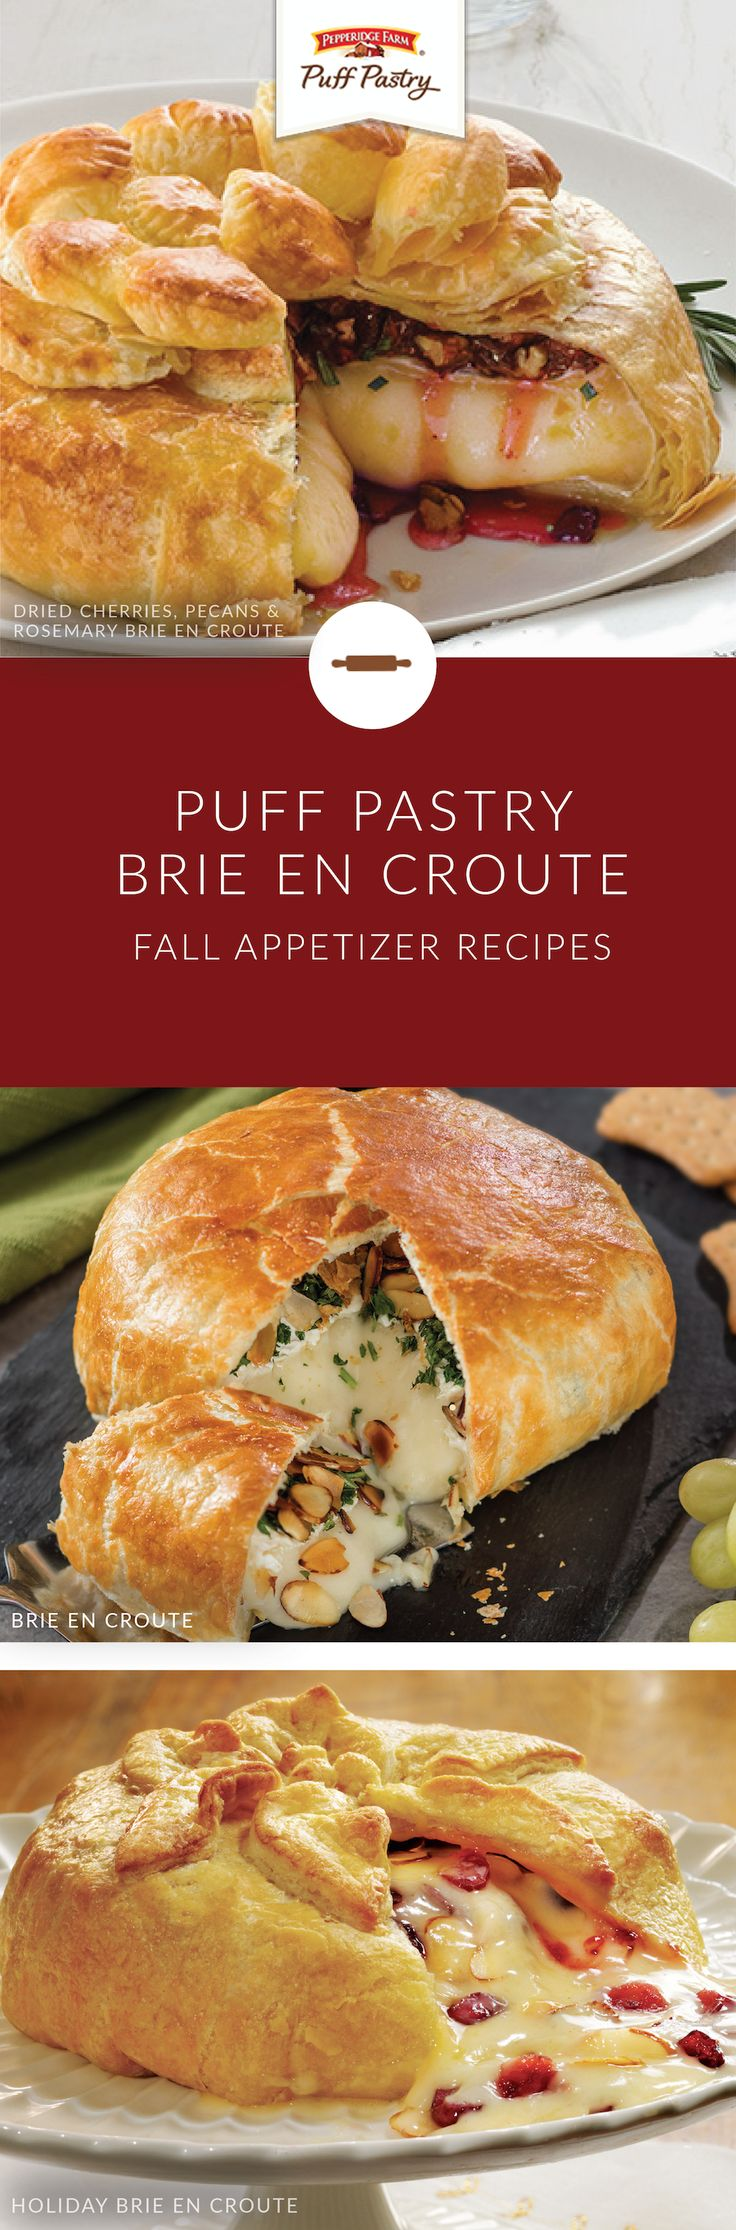 Entertaining is an art form. That's why these Puff Pastry Brie en Croute recipes are the perfect appetizer to serve at your next holiday party. Combine Pepperidge Farm® Puff Pastry Sheets with brie cheese. Then, add different fillings like almonds, cranberries, or fruit jam. Watch this video for tips, techniques, and the full recipes.